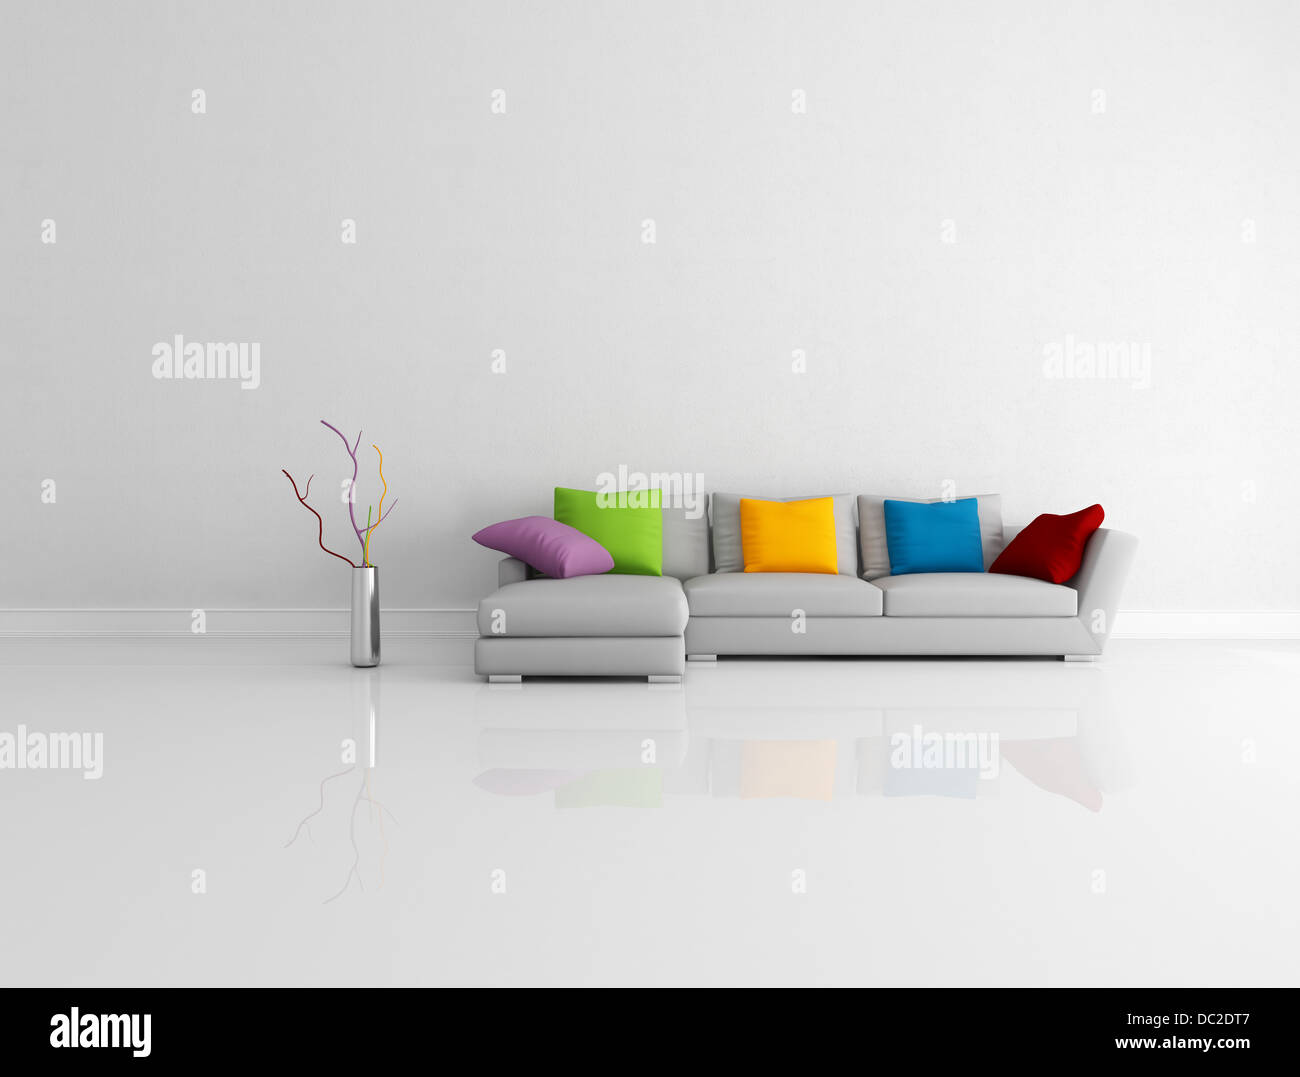 Awesome Gray Modern Couch With Colored Pillow In A Bright Empty Unemploymentrelief Wooden Chair Designs For Living Room Unemploymentrelieforg